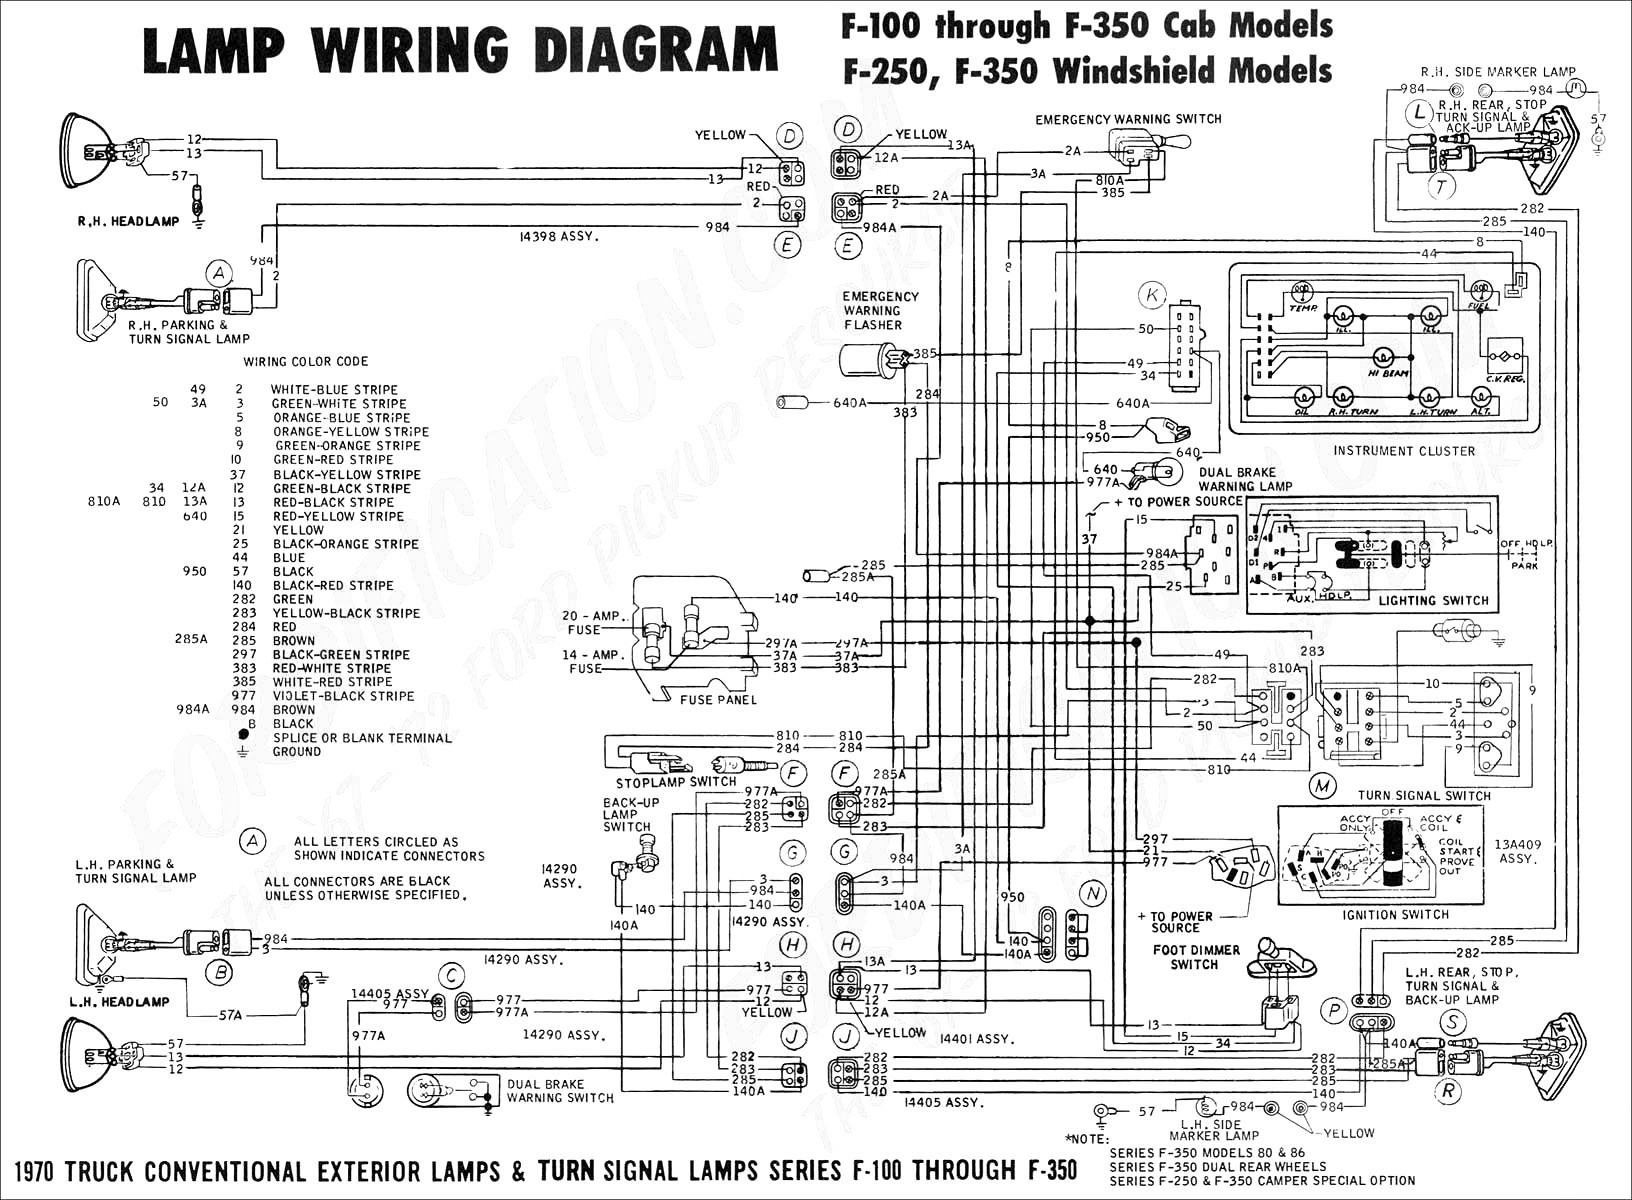 Ford Mustang Spark Plug Wiring Diagram